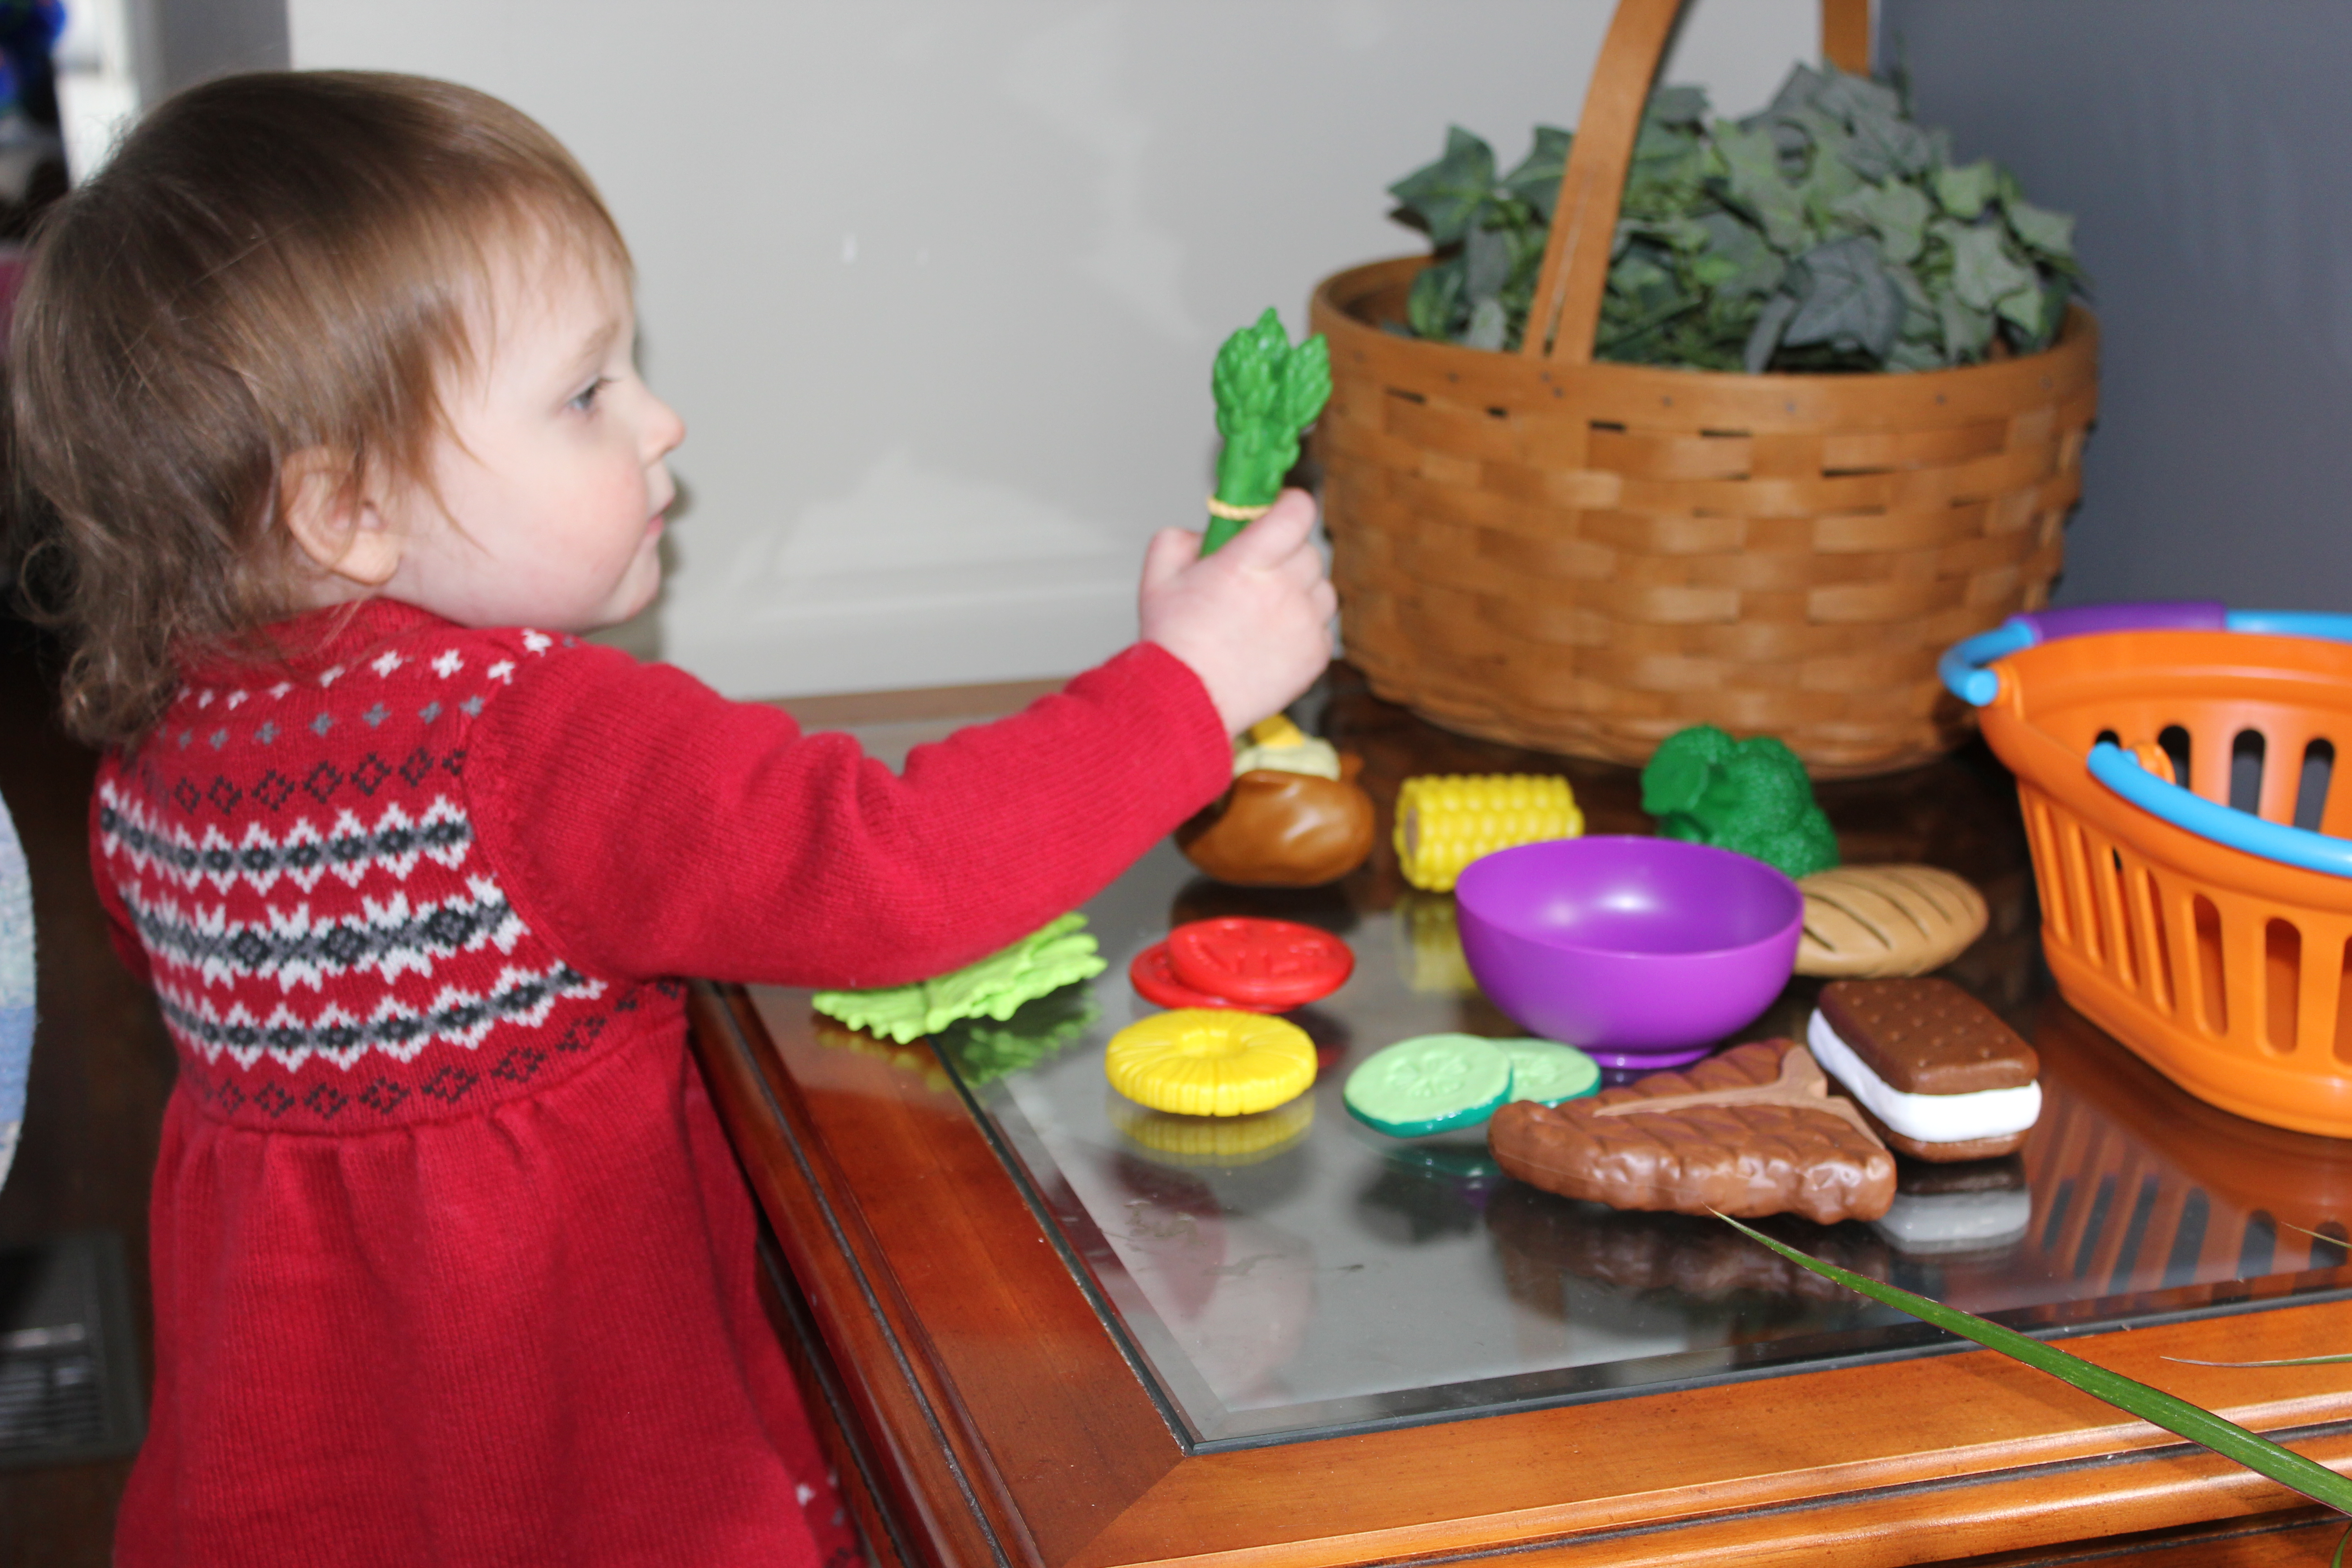 Learning Resources New Sprouts Breakfast Basket cKra1AeTyN